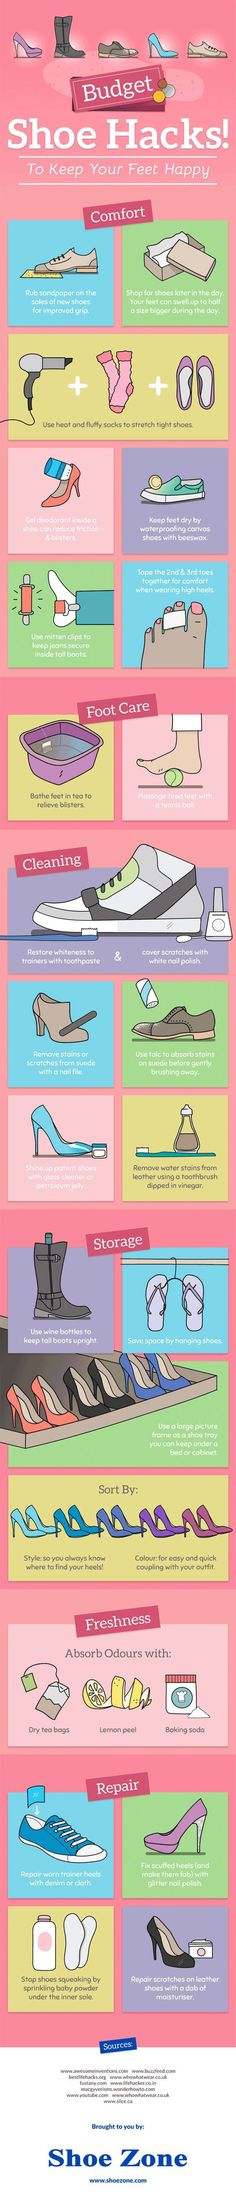 These 10 Awesome Fashion Tips and Hacks Posts are AMAZING! I've found A TON of different ideas and my wardrobe has already benefited! I am SO pinning for later!